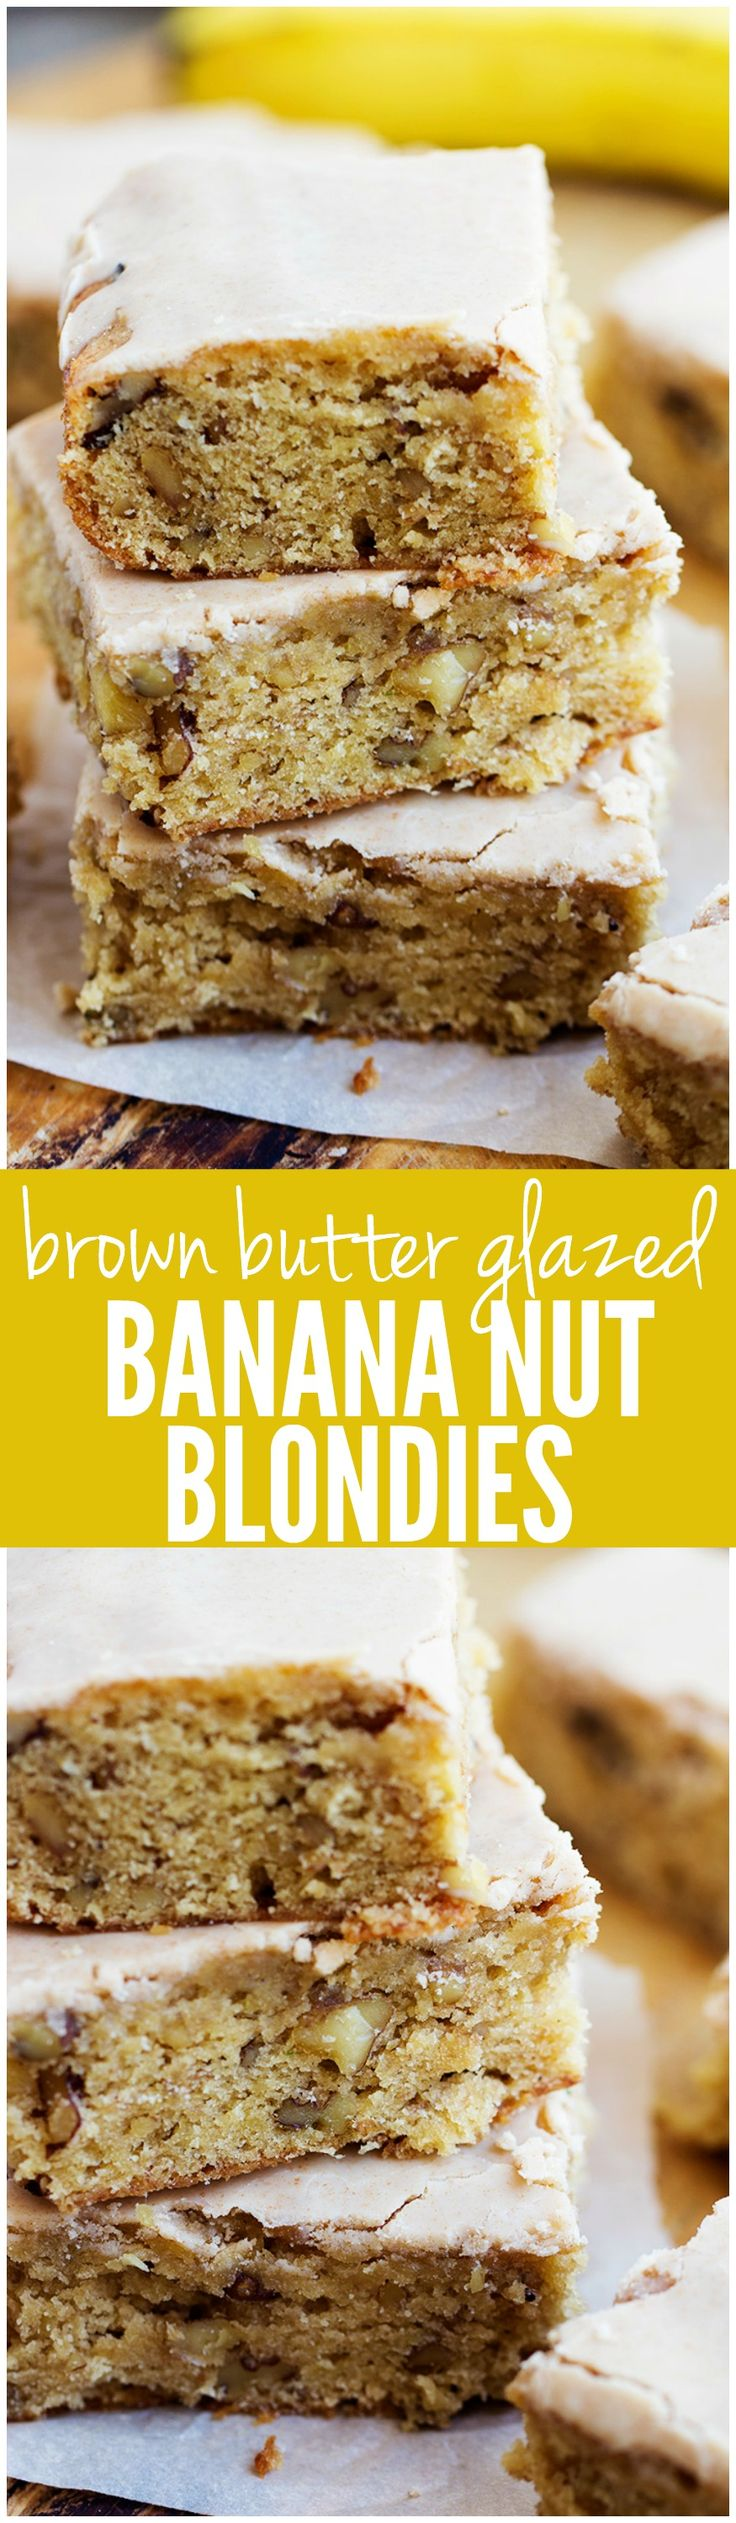 Brown Butter Glazed Banana Nut Blondies - These will be the BEST thing that you ever make with over-ripe bananas! Soft and chewy banana nut blondies with an amazing brown butter glaze!